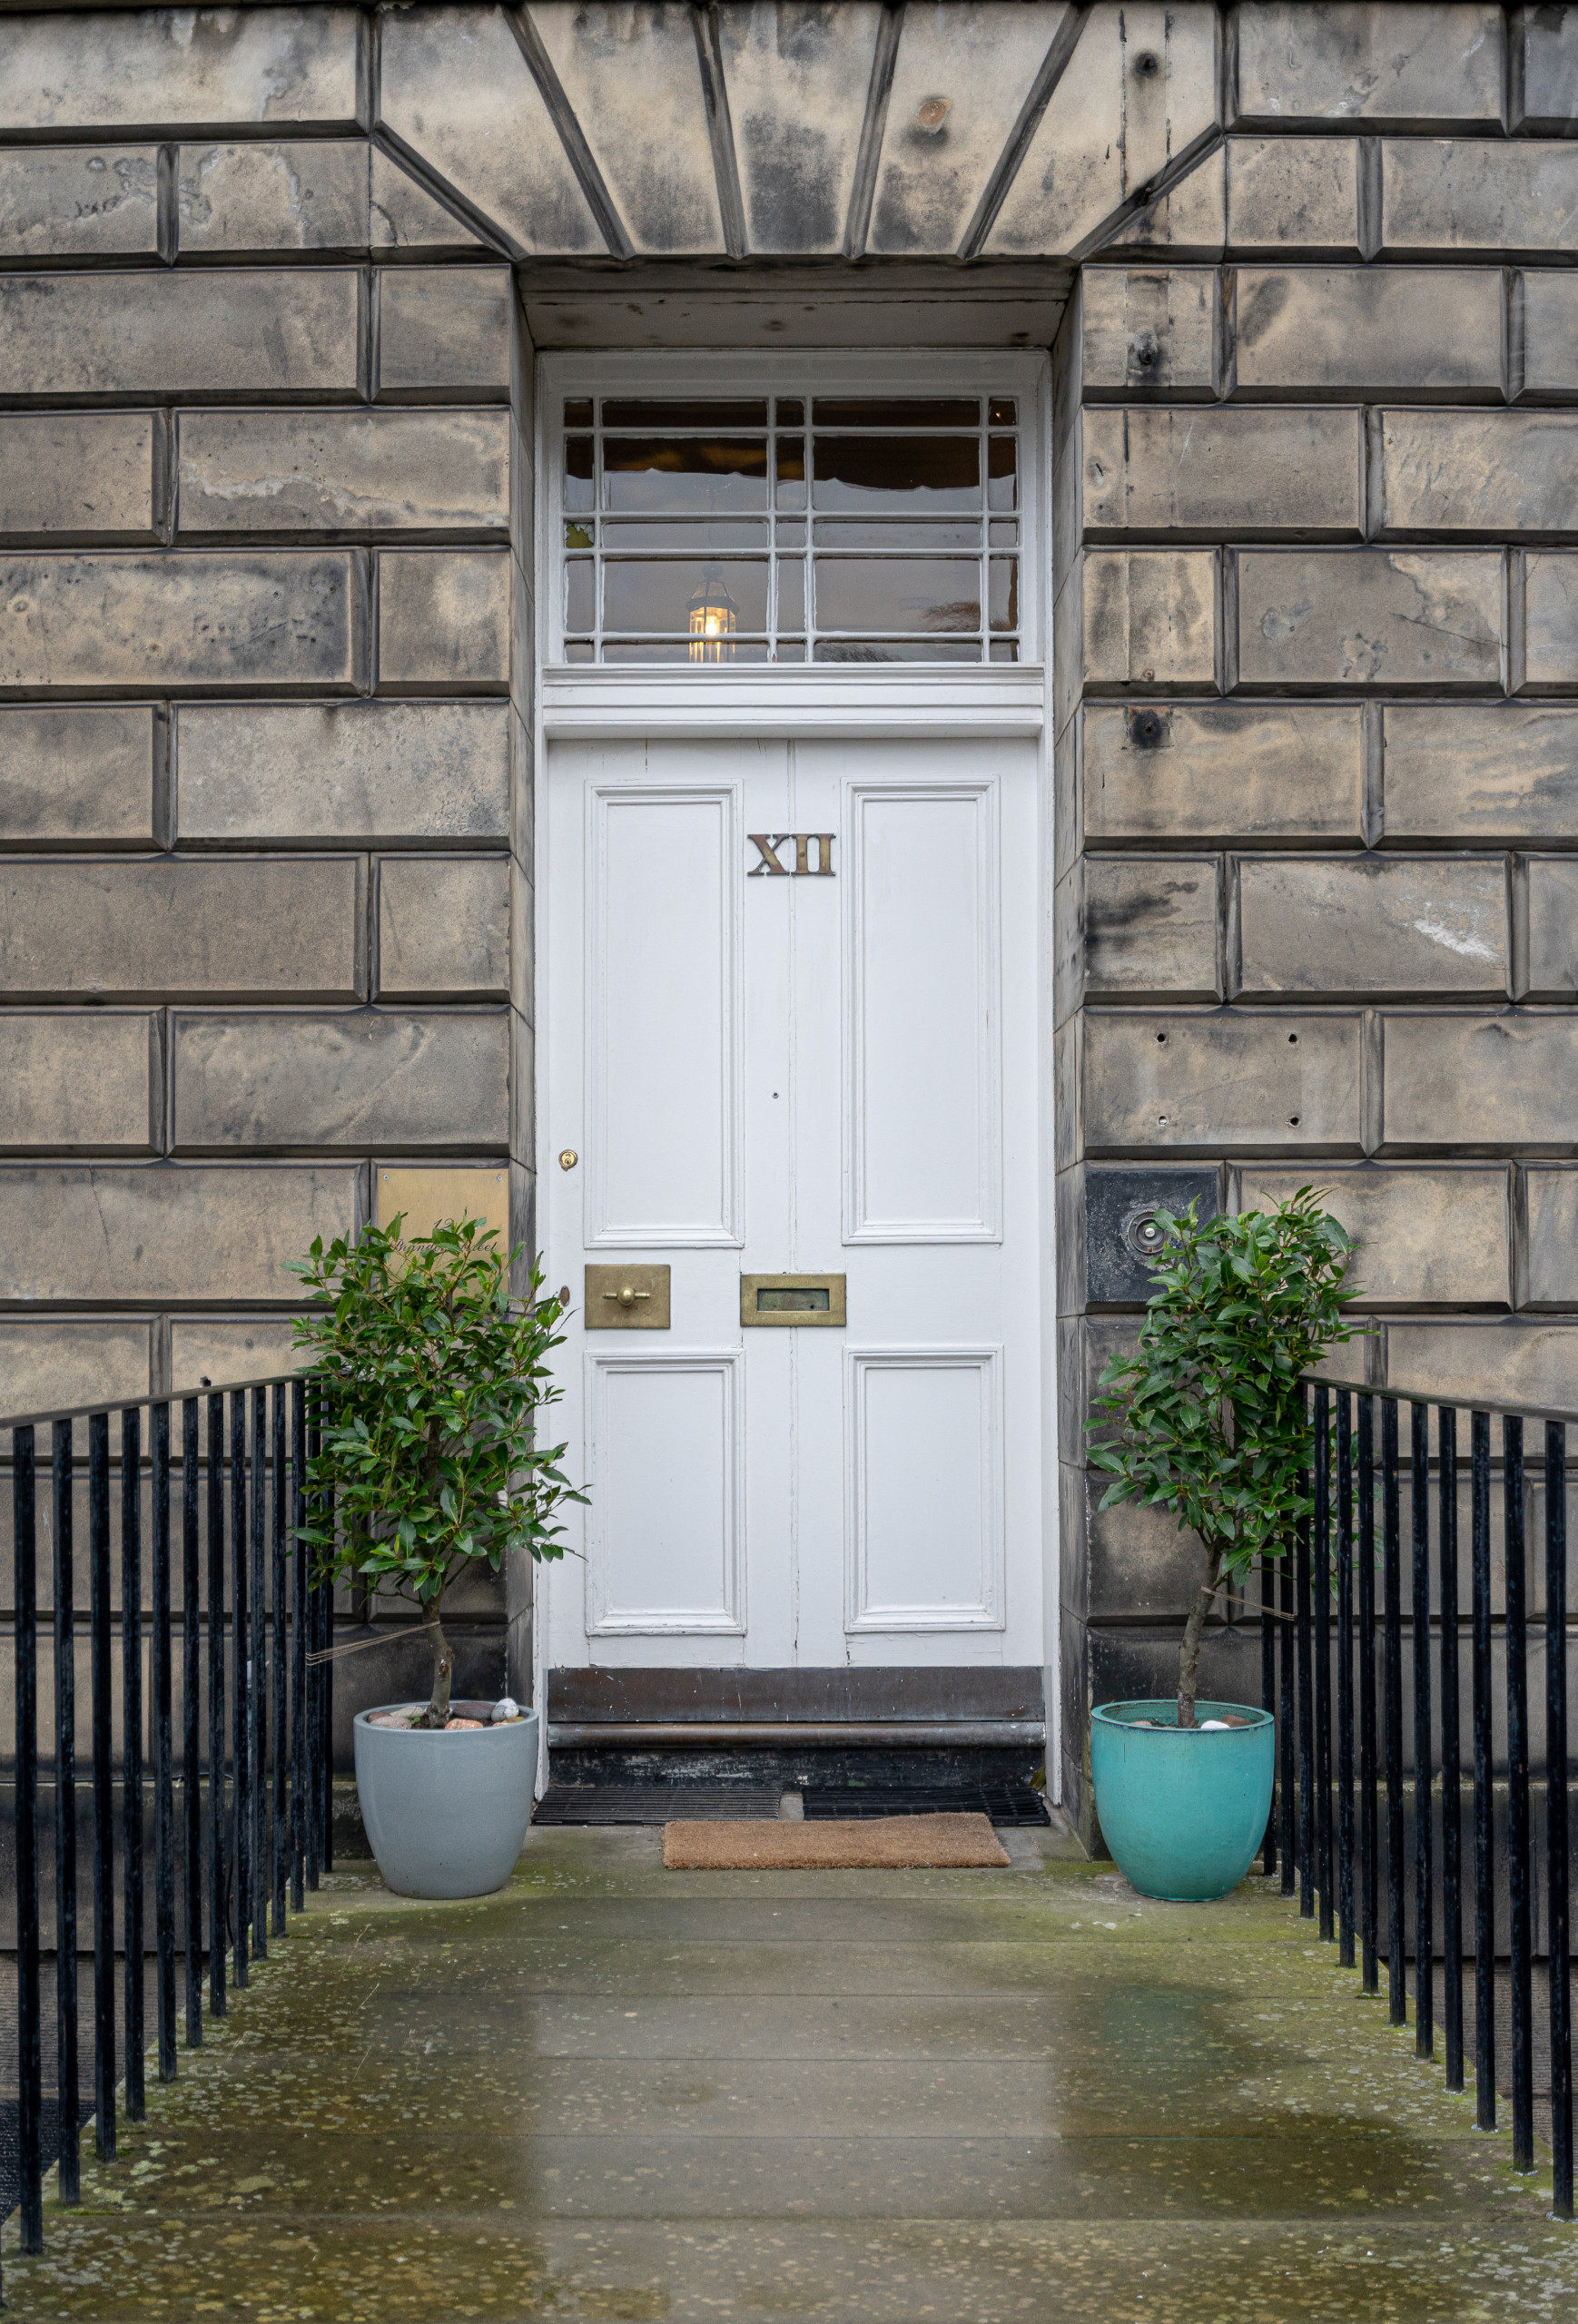 Alterations to a B-listed flat in the New Town, Edinburgh